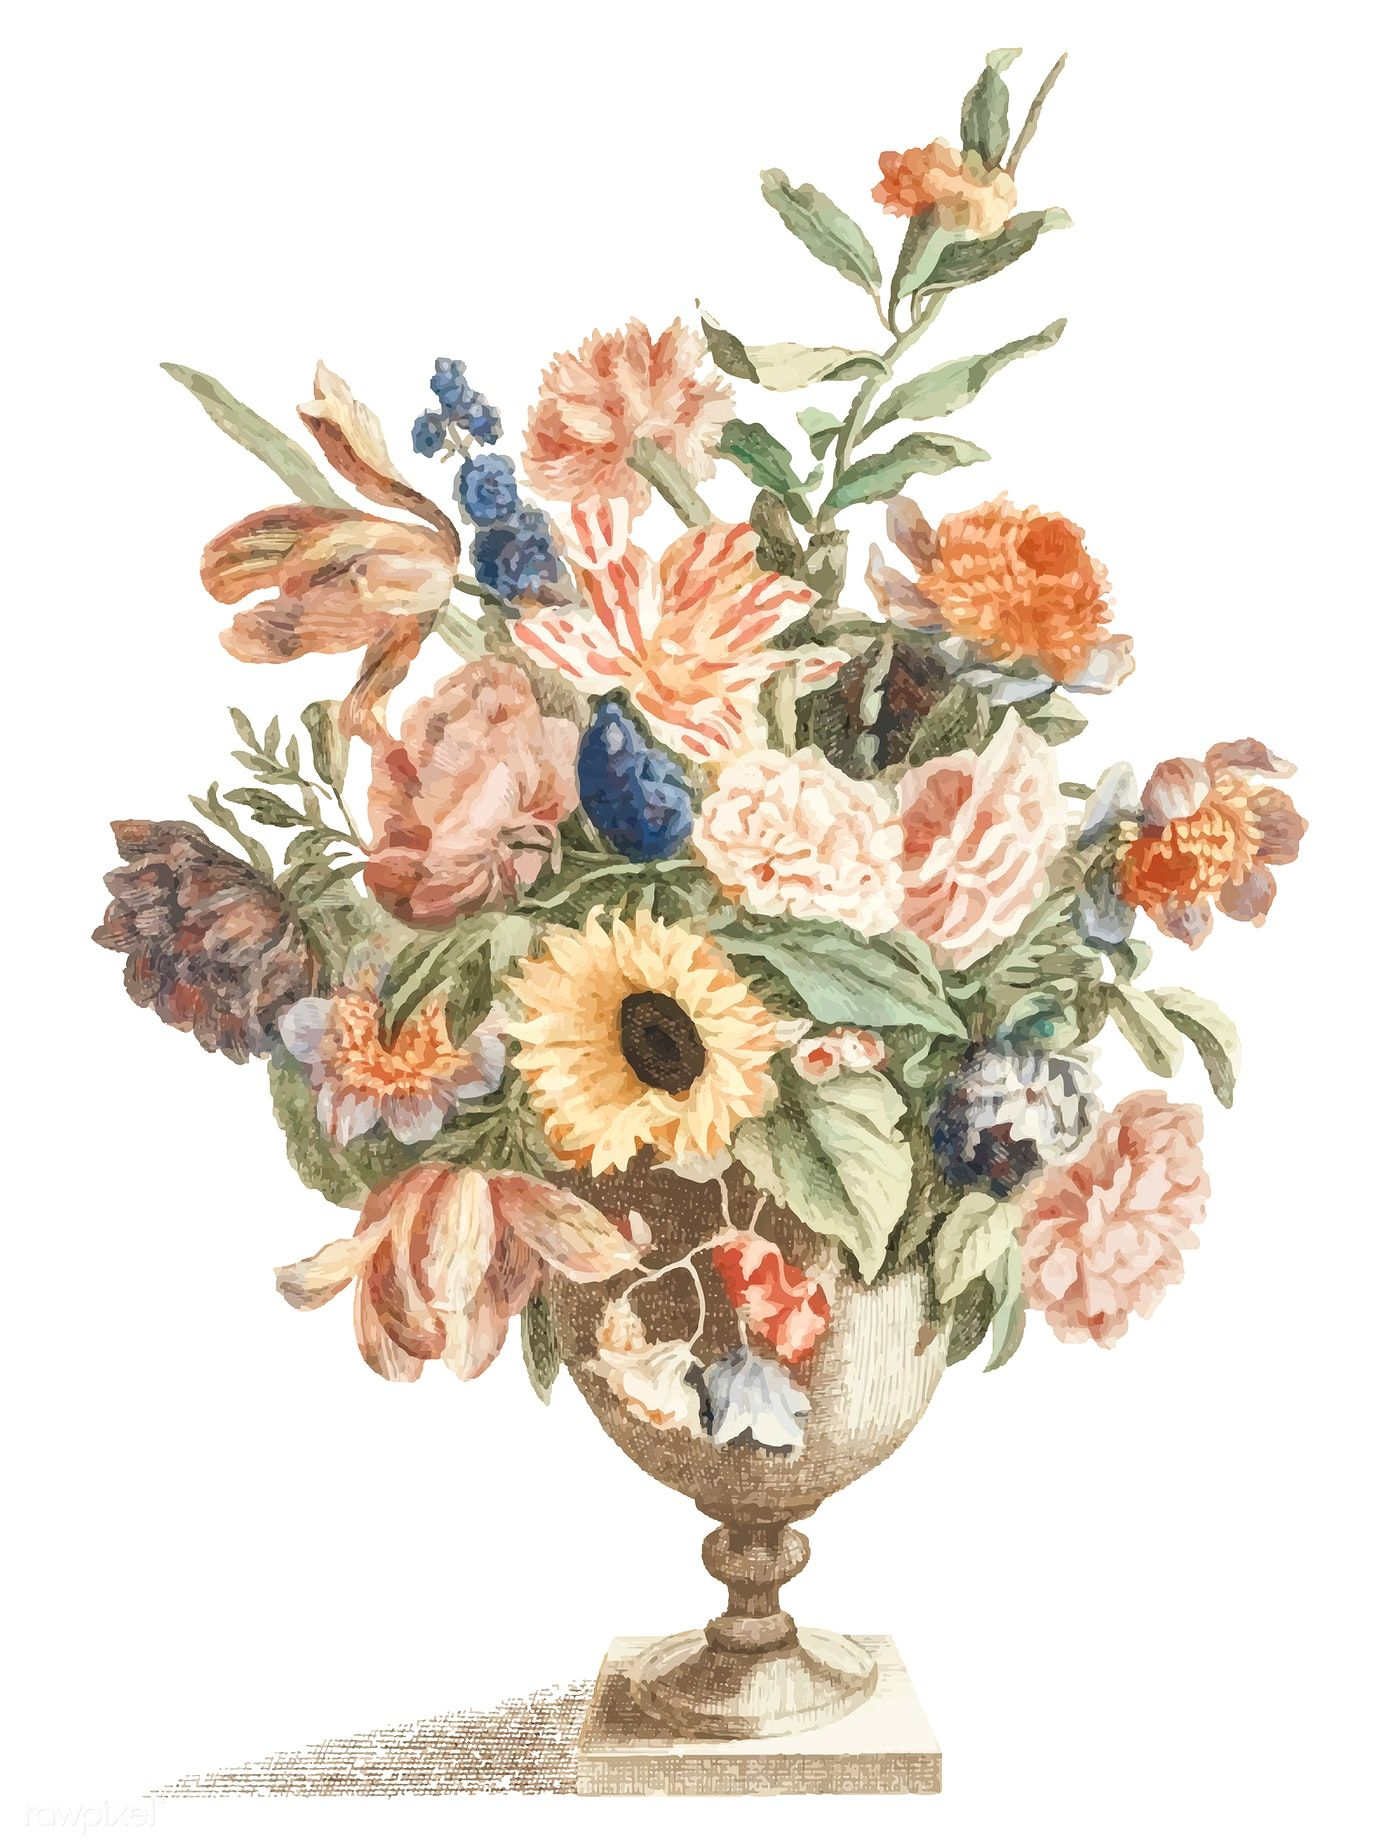 Vintage Illustration Of A Vase With Flowers Free Image By